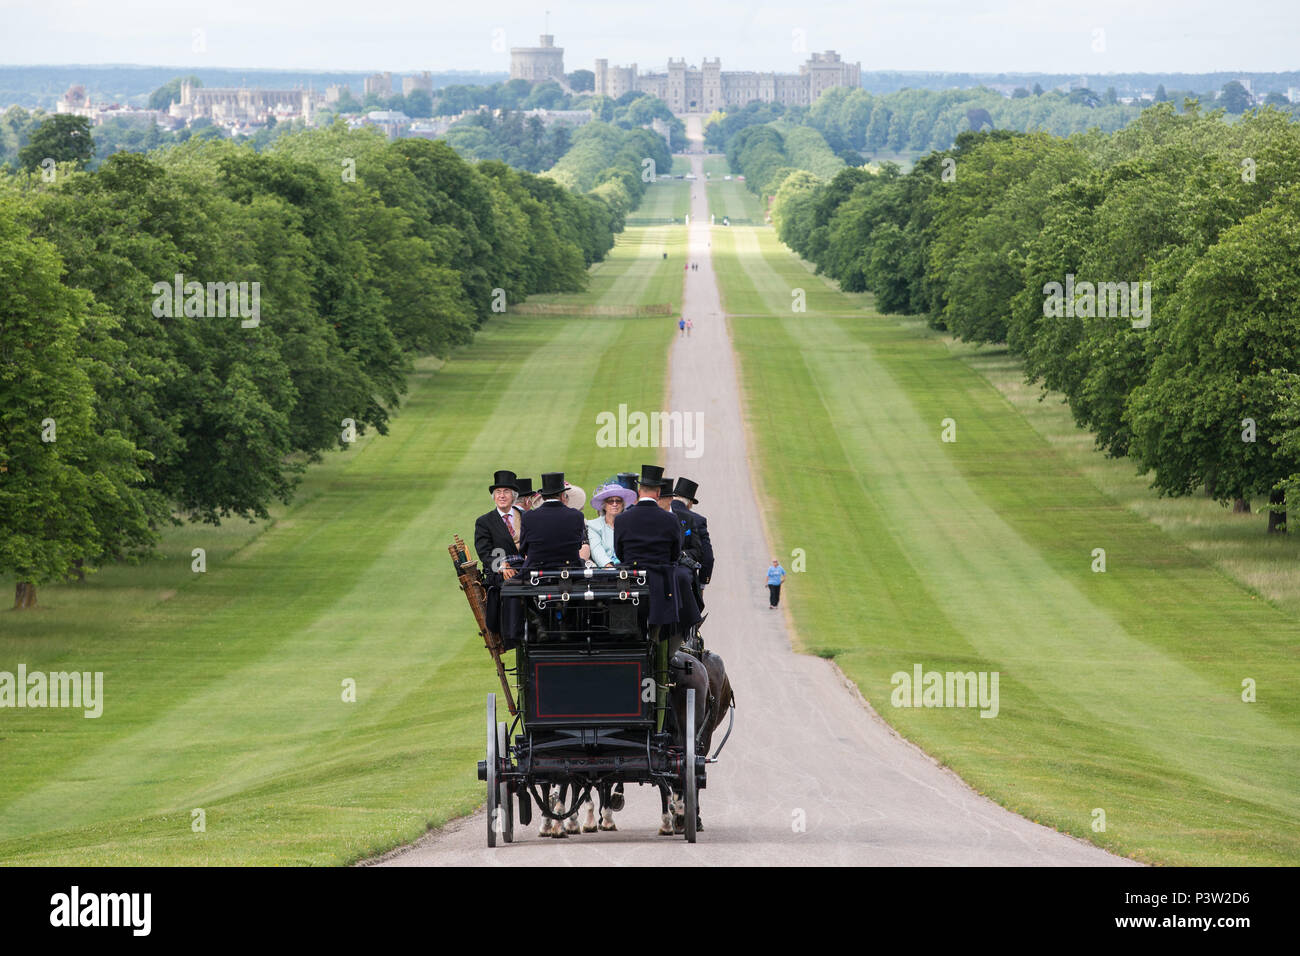 Windsor, UK. 19th June, 2018. Horse drawn carriages carry smartly attired racegoers back along the Long Walk in Windsor Great Park towards Windsor Castle at the end of the first day of Royal Ascot. Credit: Mark Kerrison/Alamy Live News Stock Photo